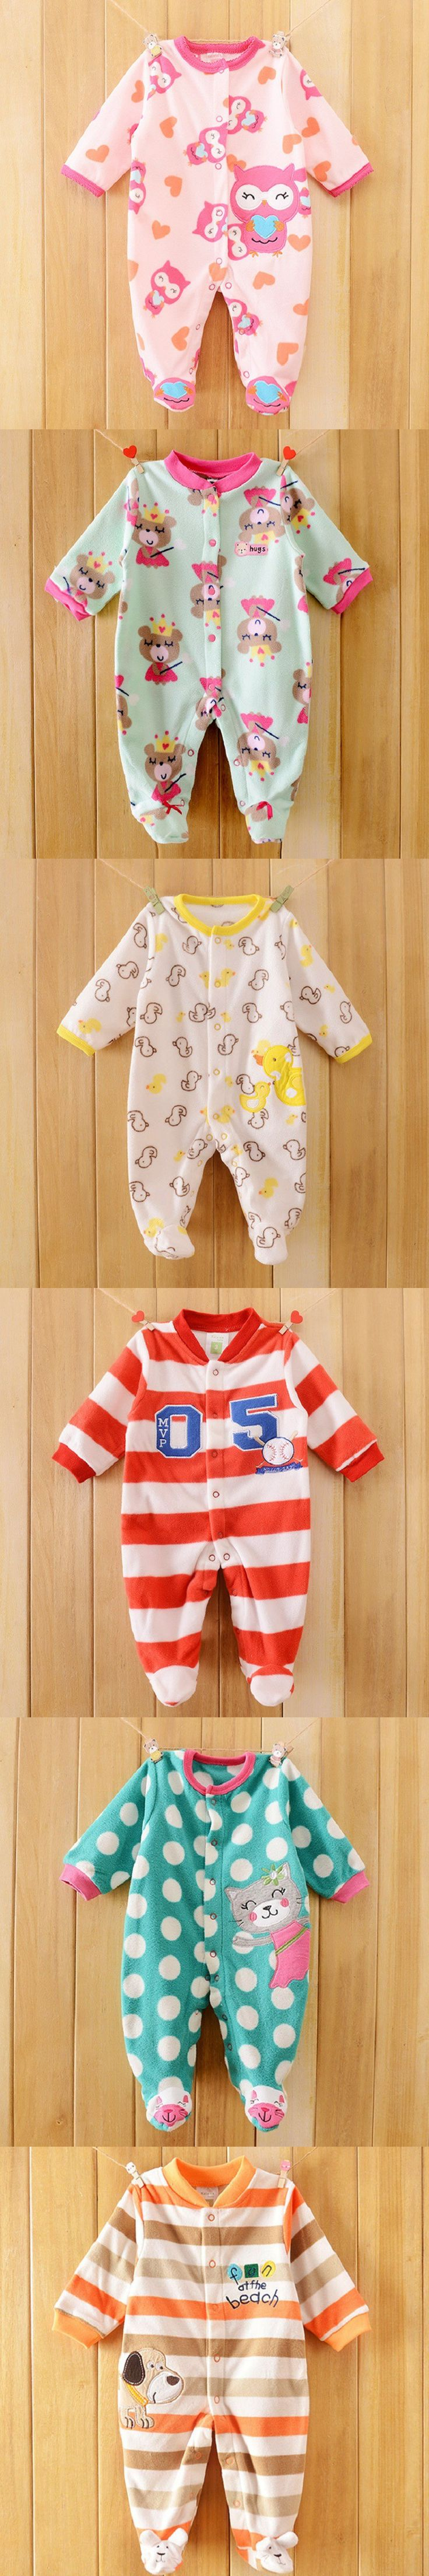 Owl Print Fleece Newborn Baby Girl Overalls Romper Macacao Bebe Body Baby Rompers New Born Baby Clothes, Size 3-12M $10.25